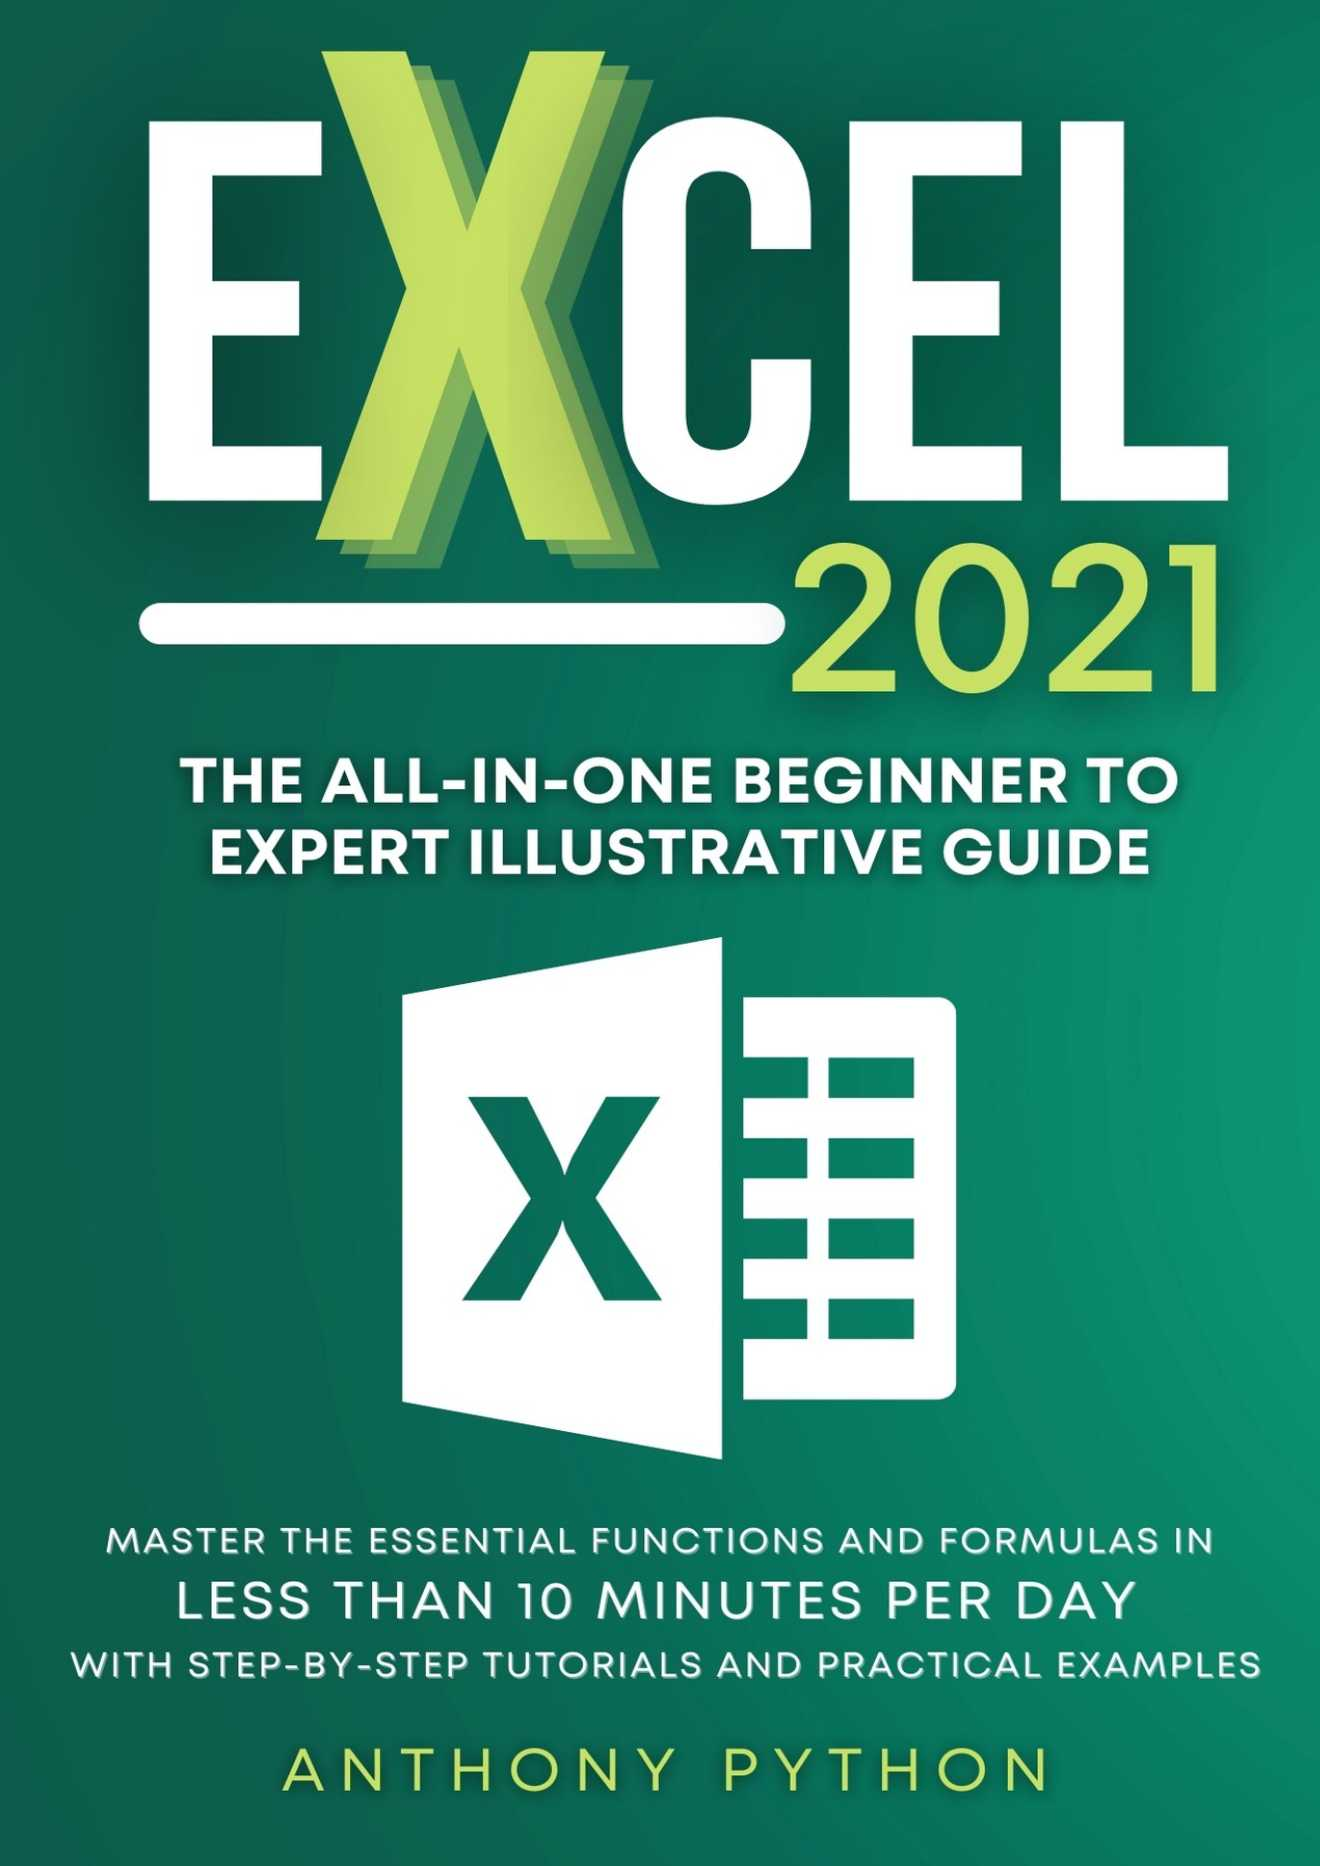 Excel 2021: The All-in-One Beginner to Expert Illustrative Guide